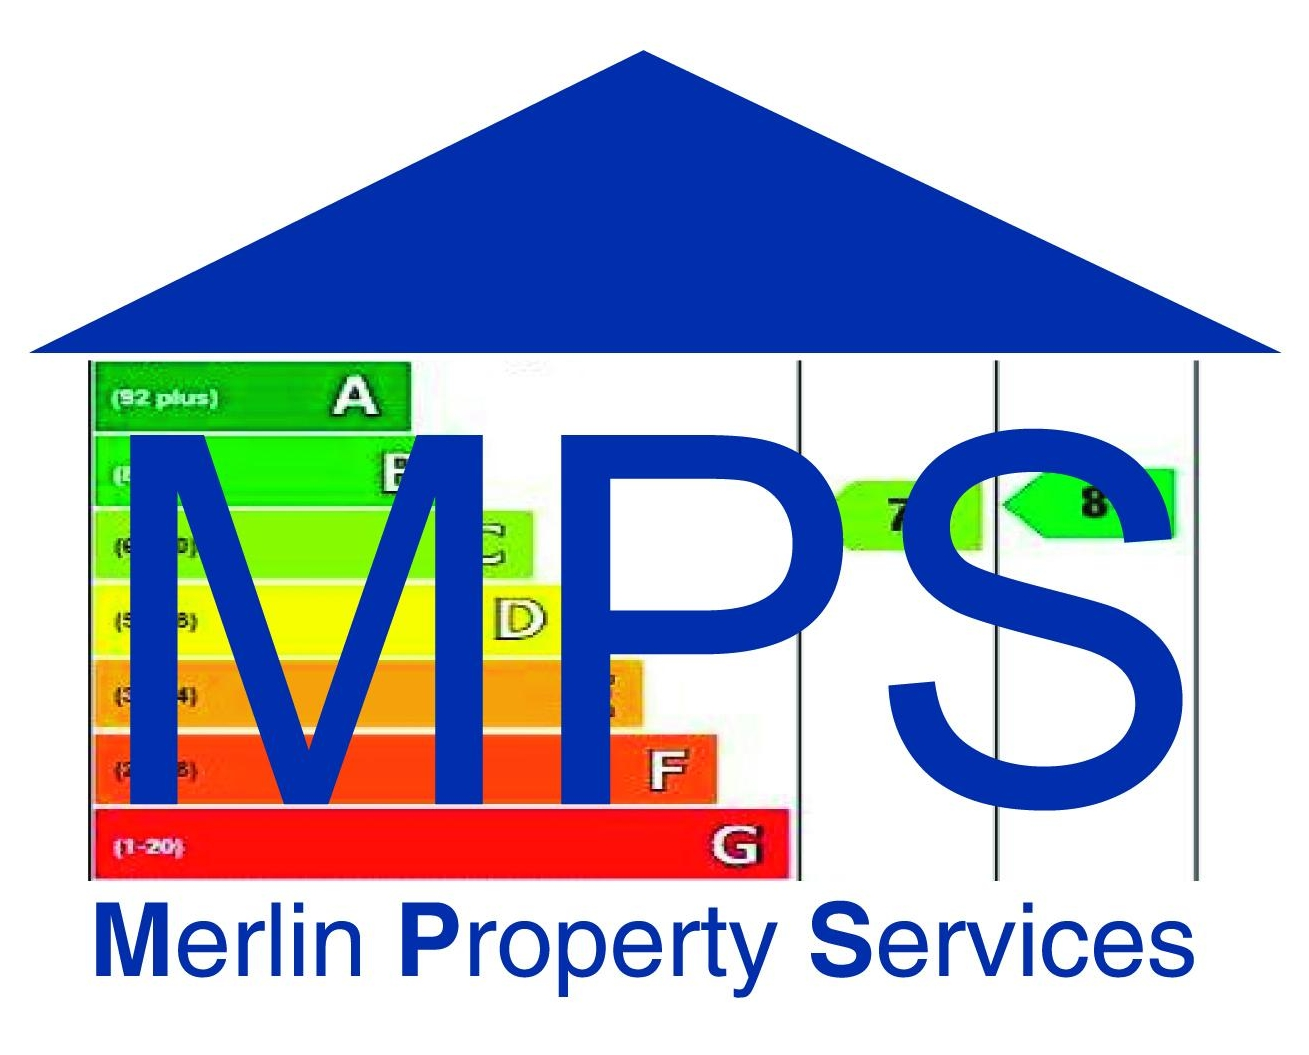 Merlin Property Services